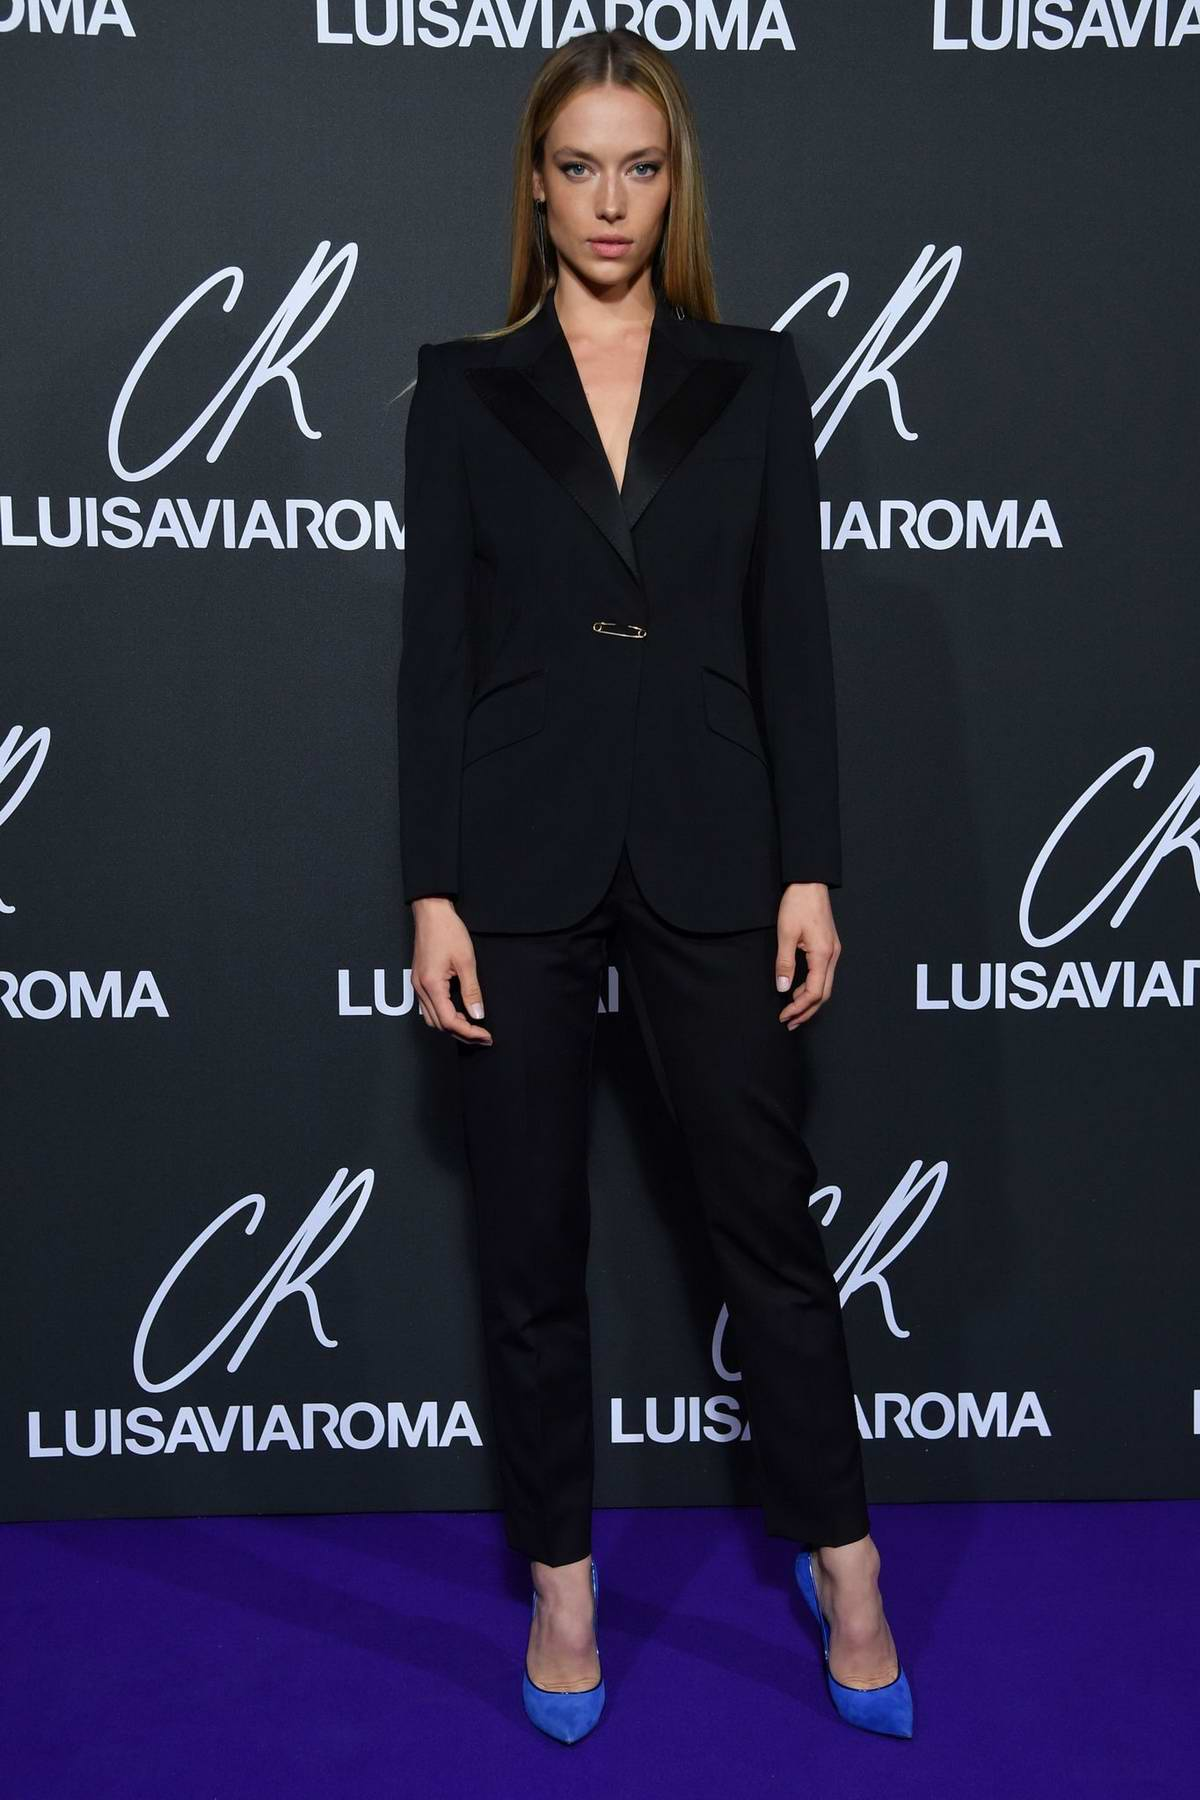 Hannah Ferguson attends the CR Fashion Book x Luisasaviaroma photocall during Paris Fashion Week in Paris, France